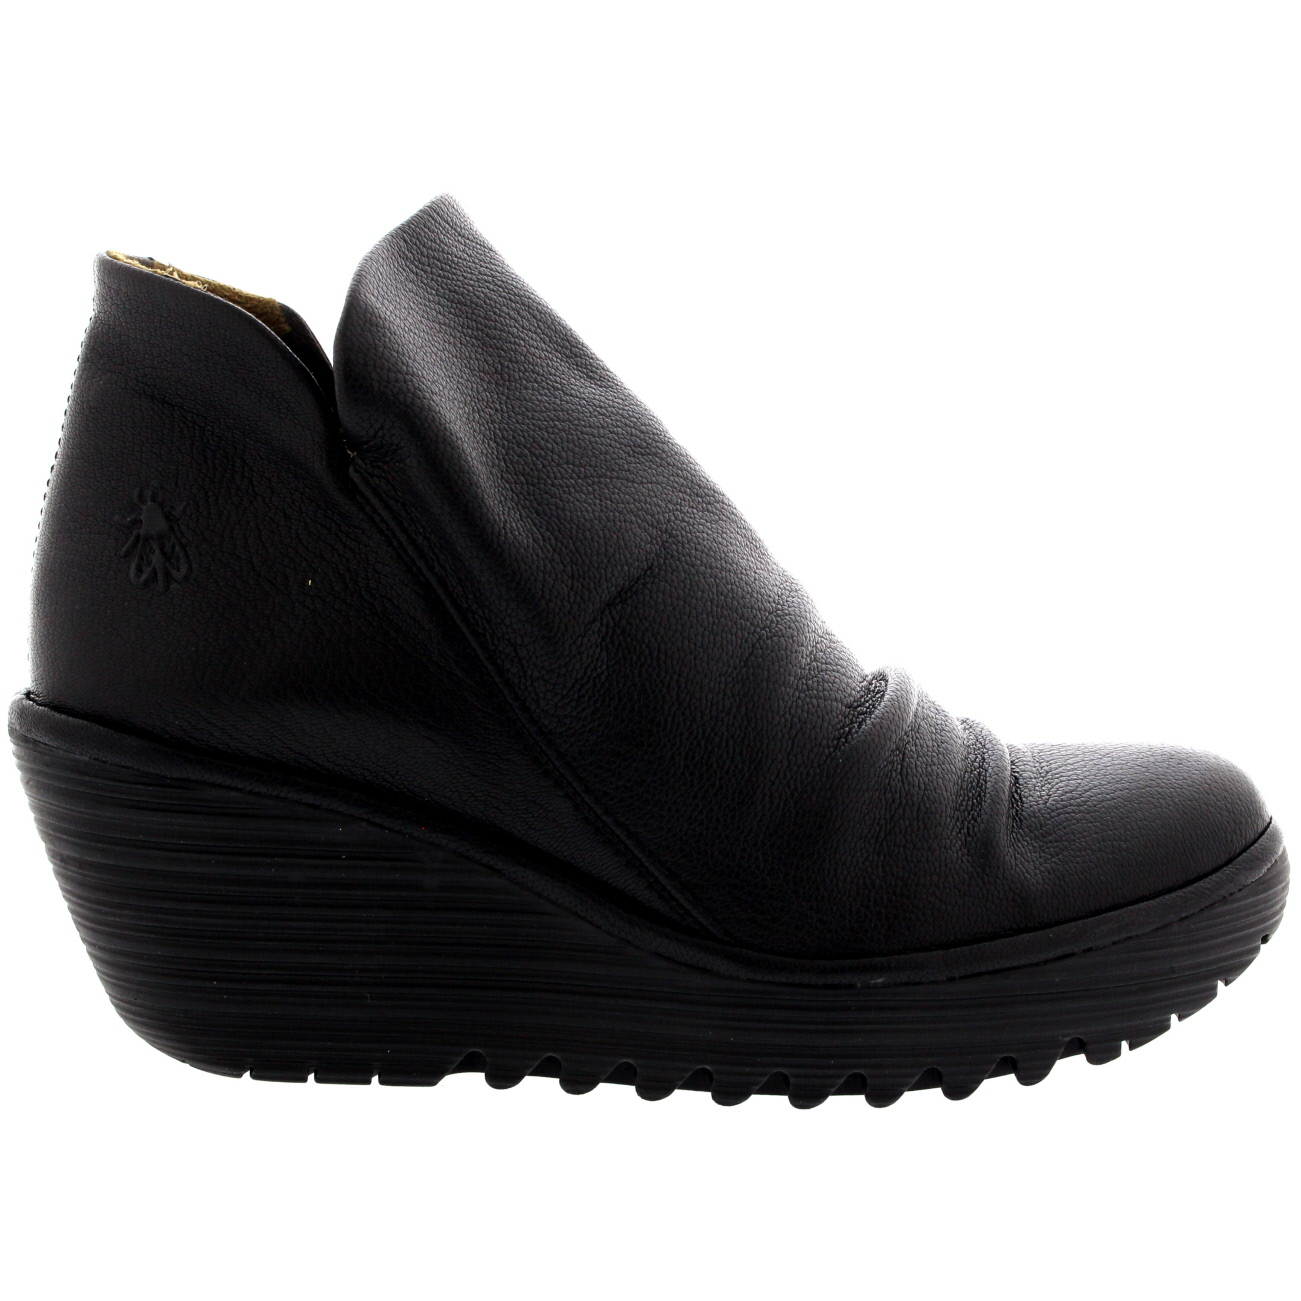 Damenschuhe Fly London Yip Winter Mousse Casual Wedge Heel Winter Yip Leder Ankle Boot US 5-12 be542c